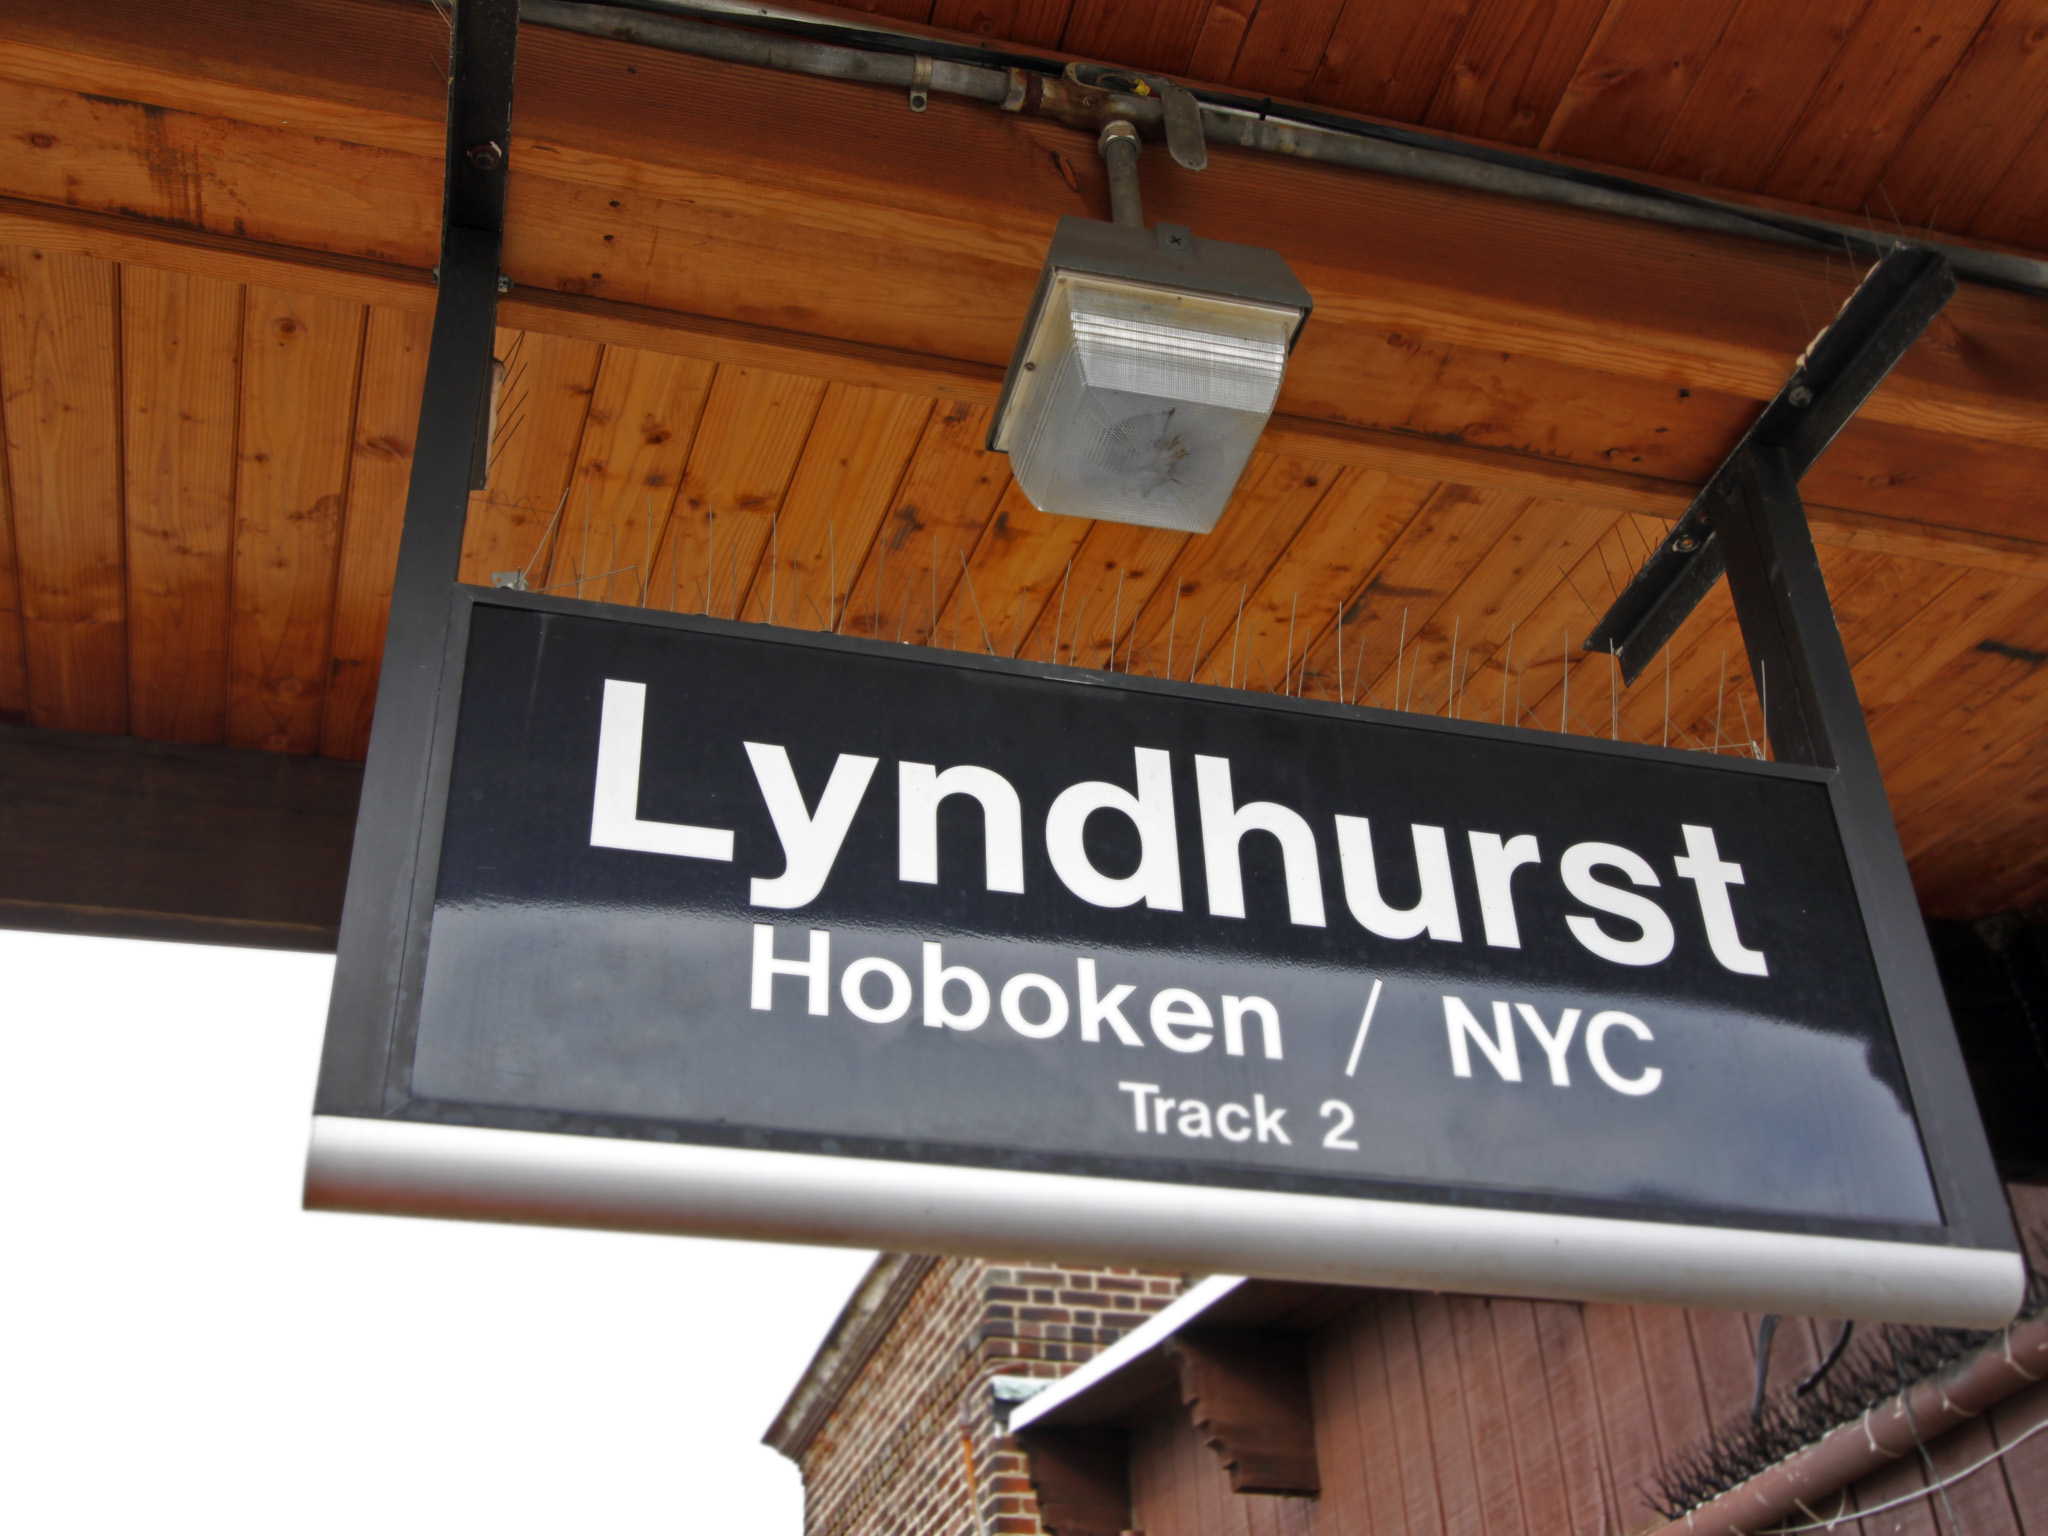 NYC Commuters/ Work or Park In Lyndhurst?